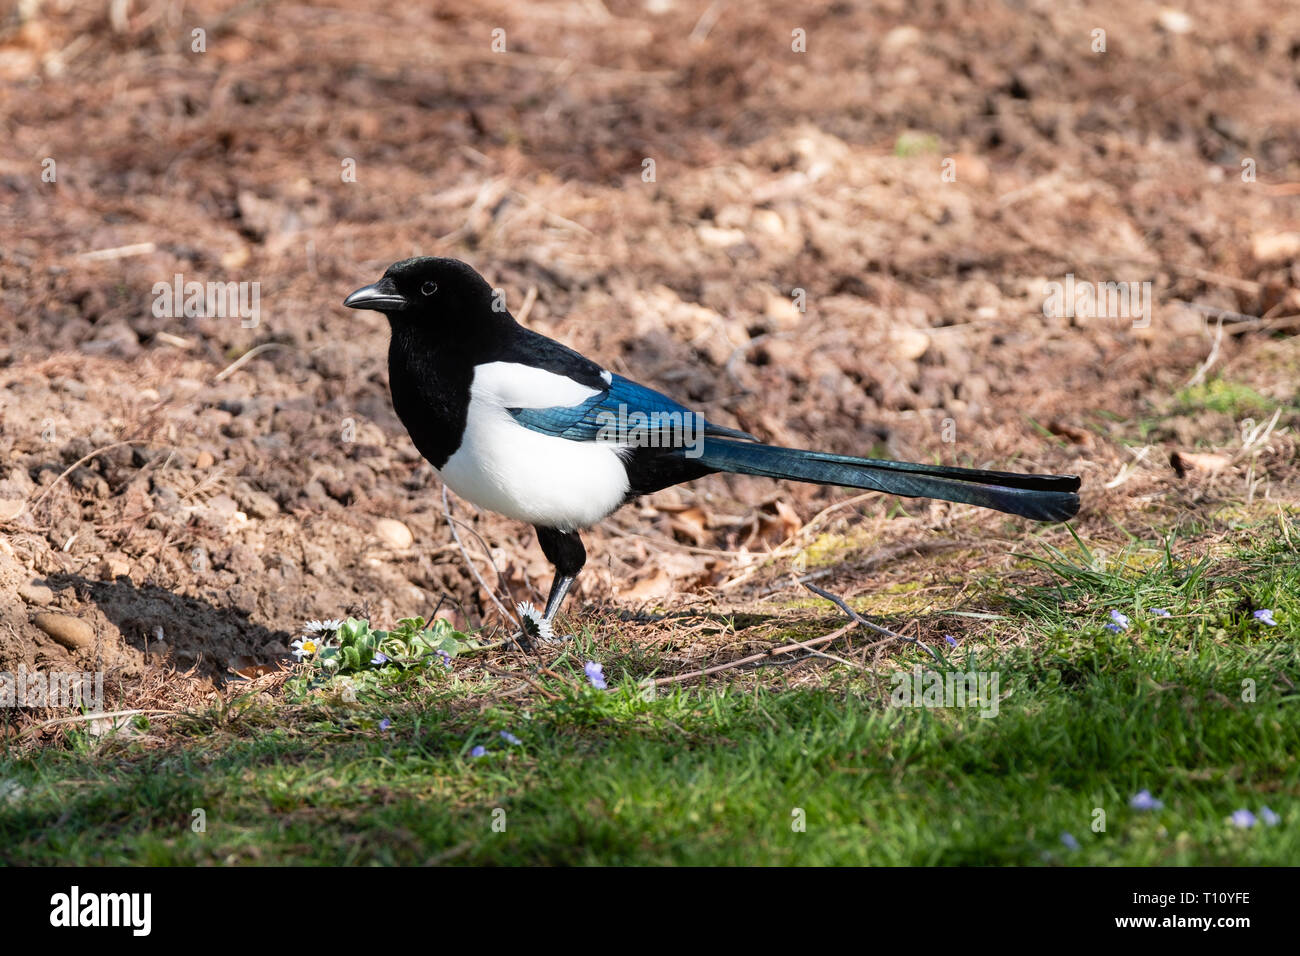 A magpie on the ground - Stock Image